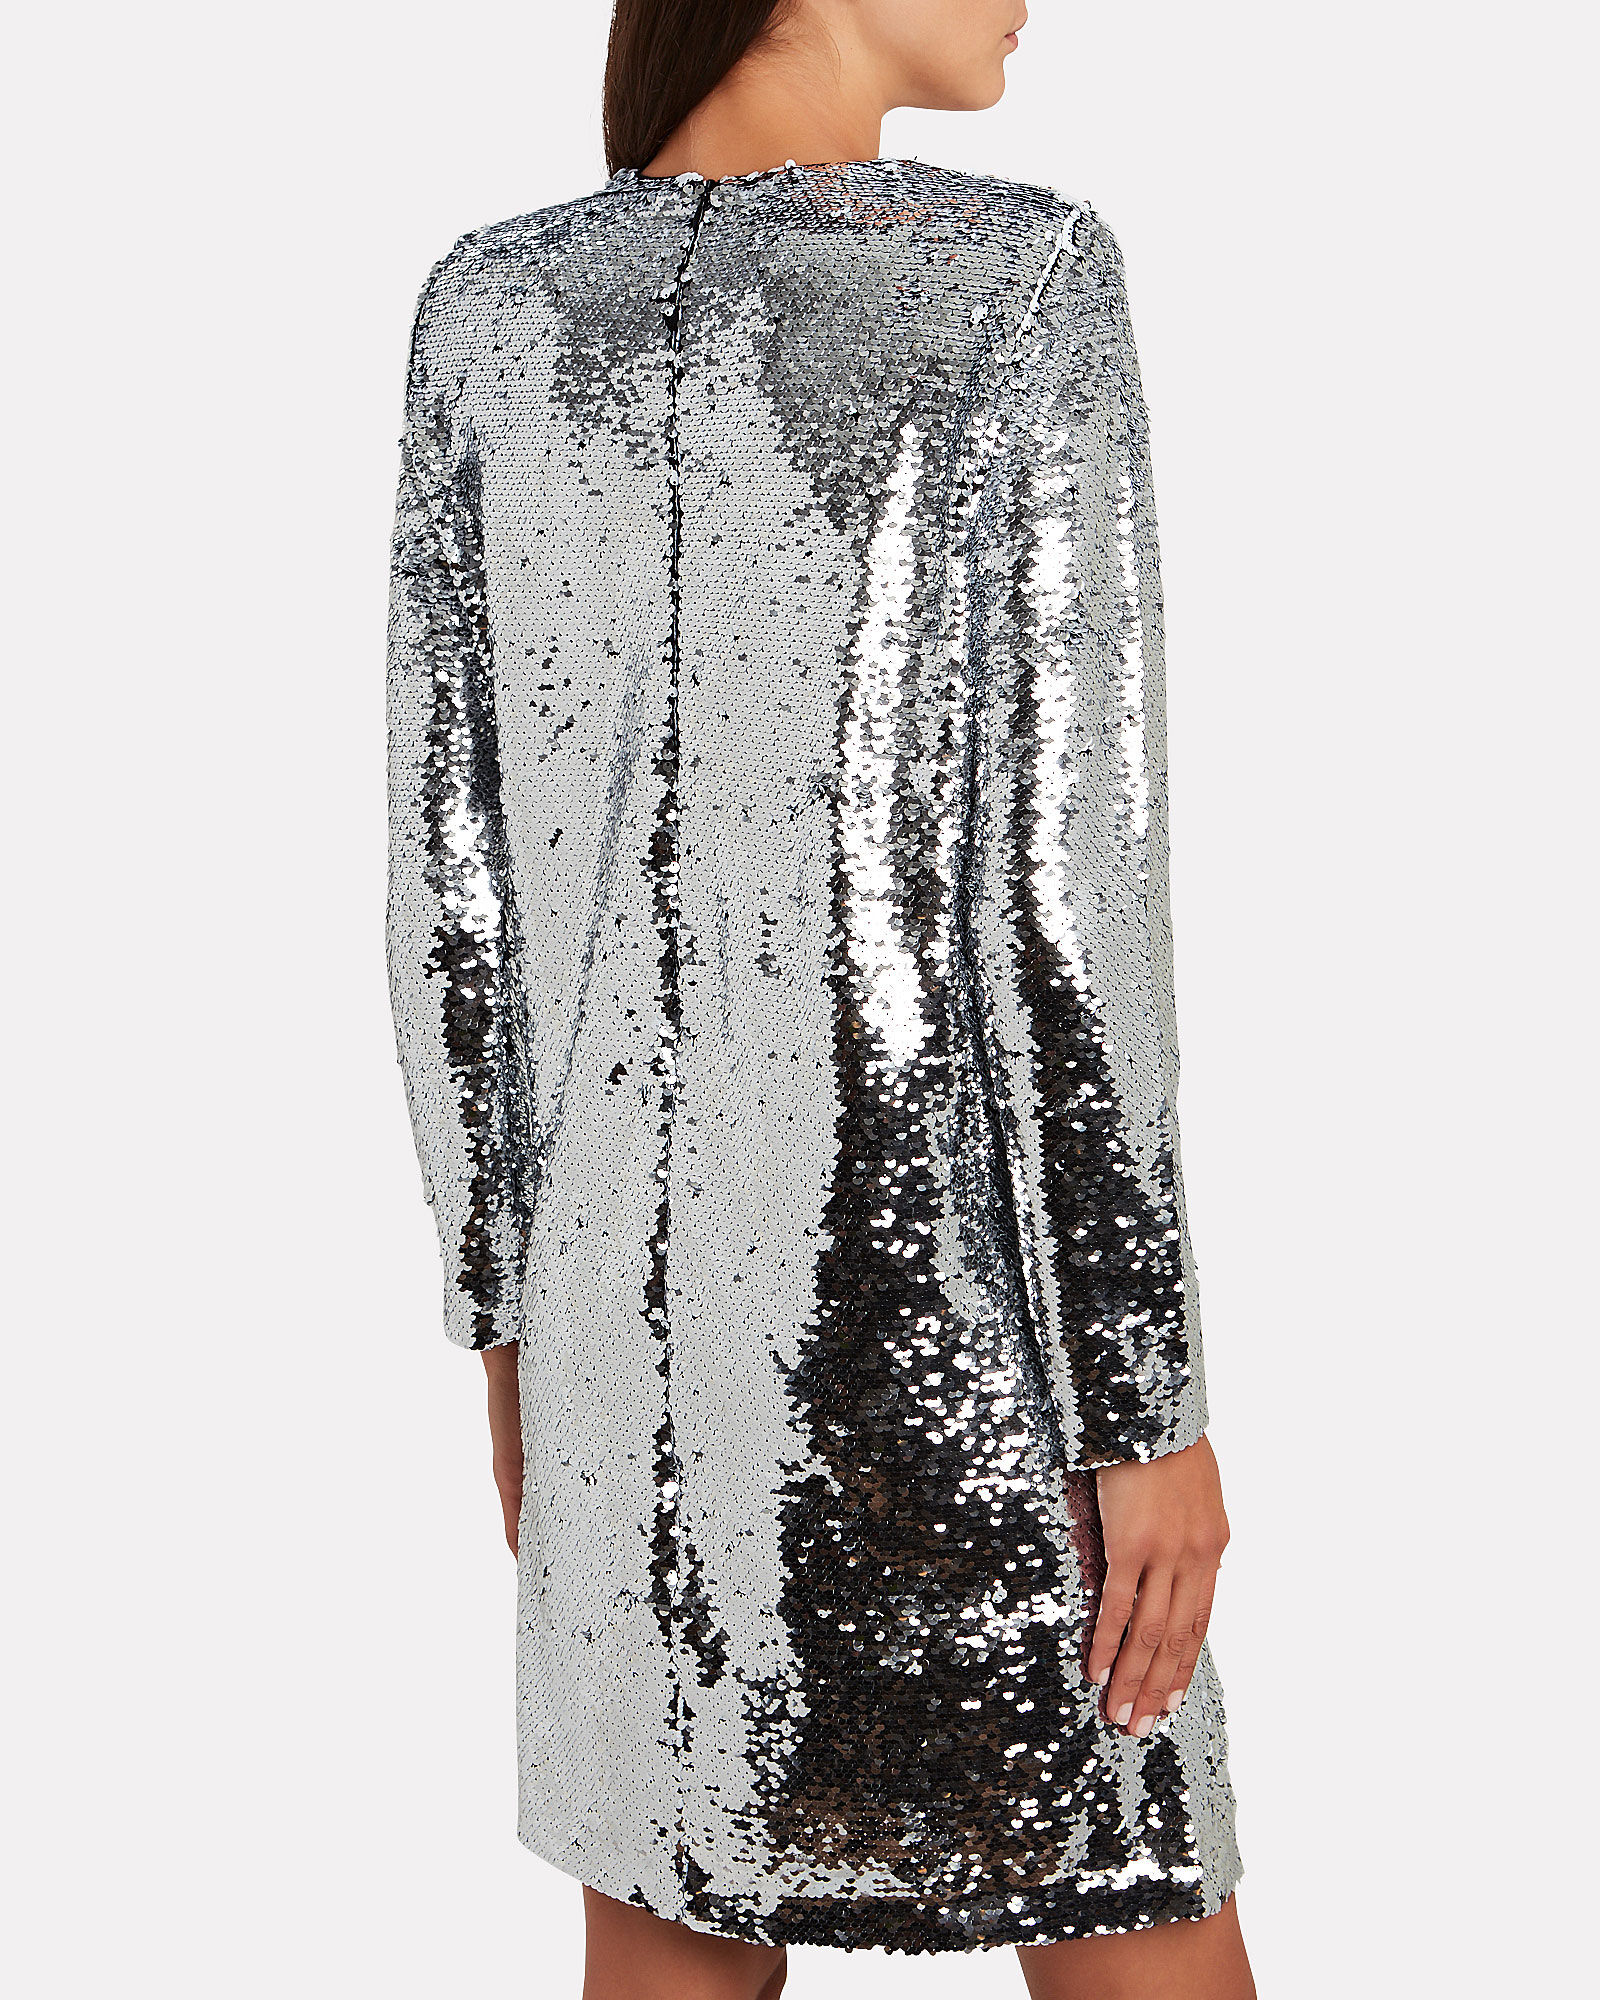 Mirrored Sequin Shift Dress, SILVER, hi-res